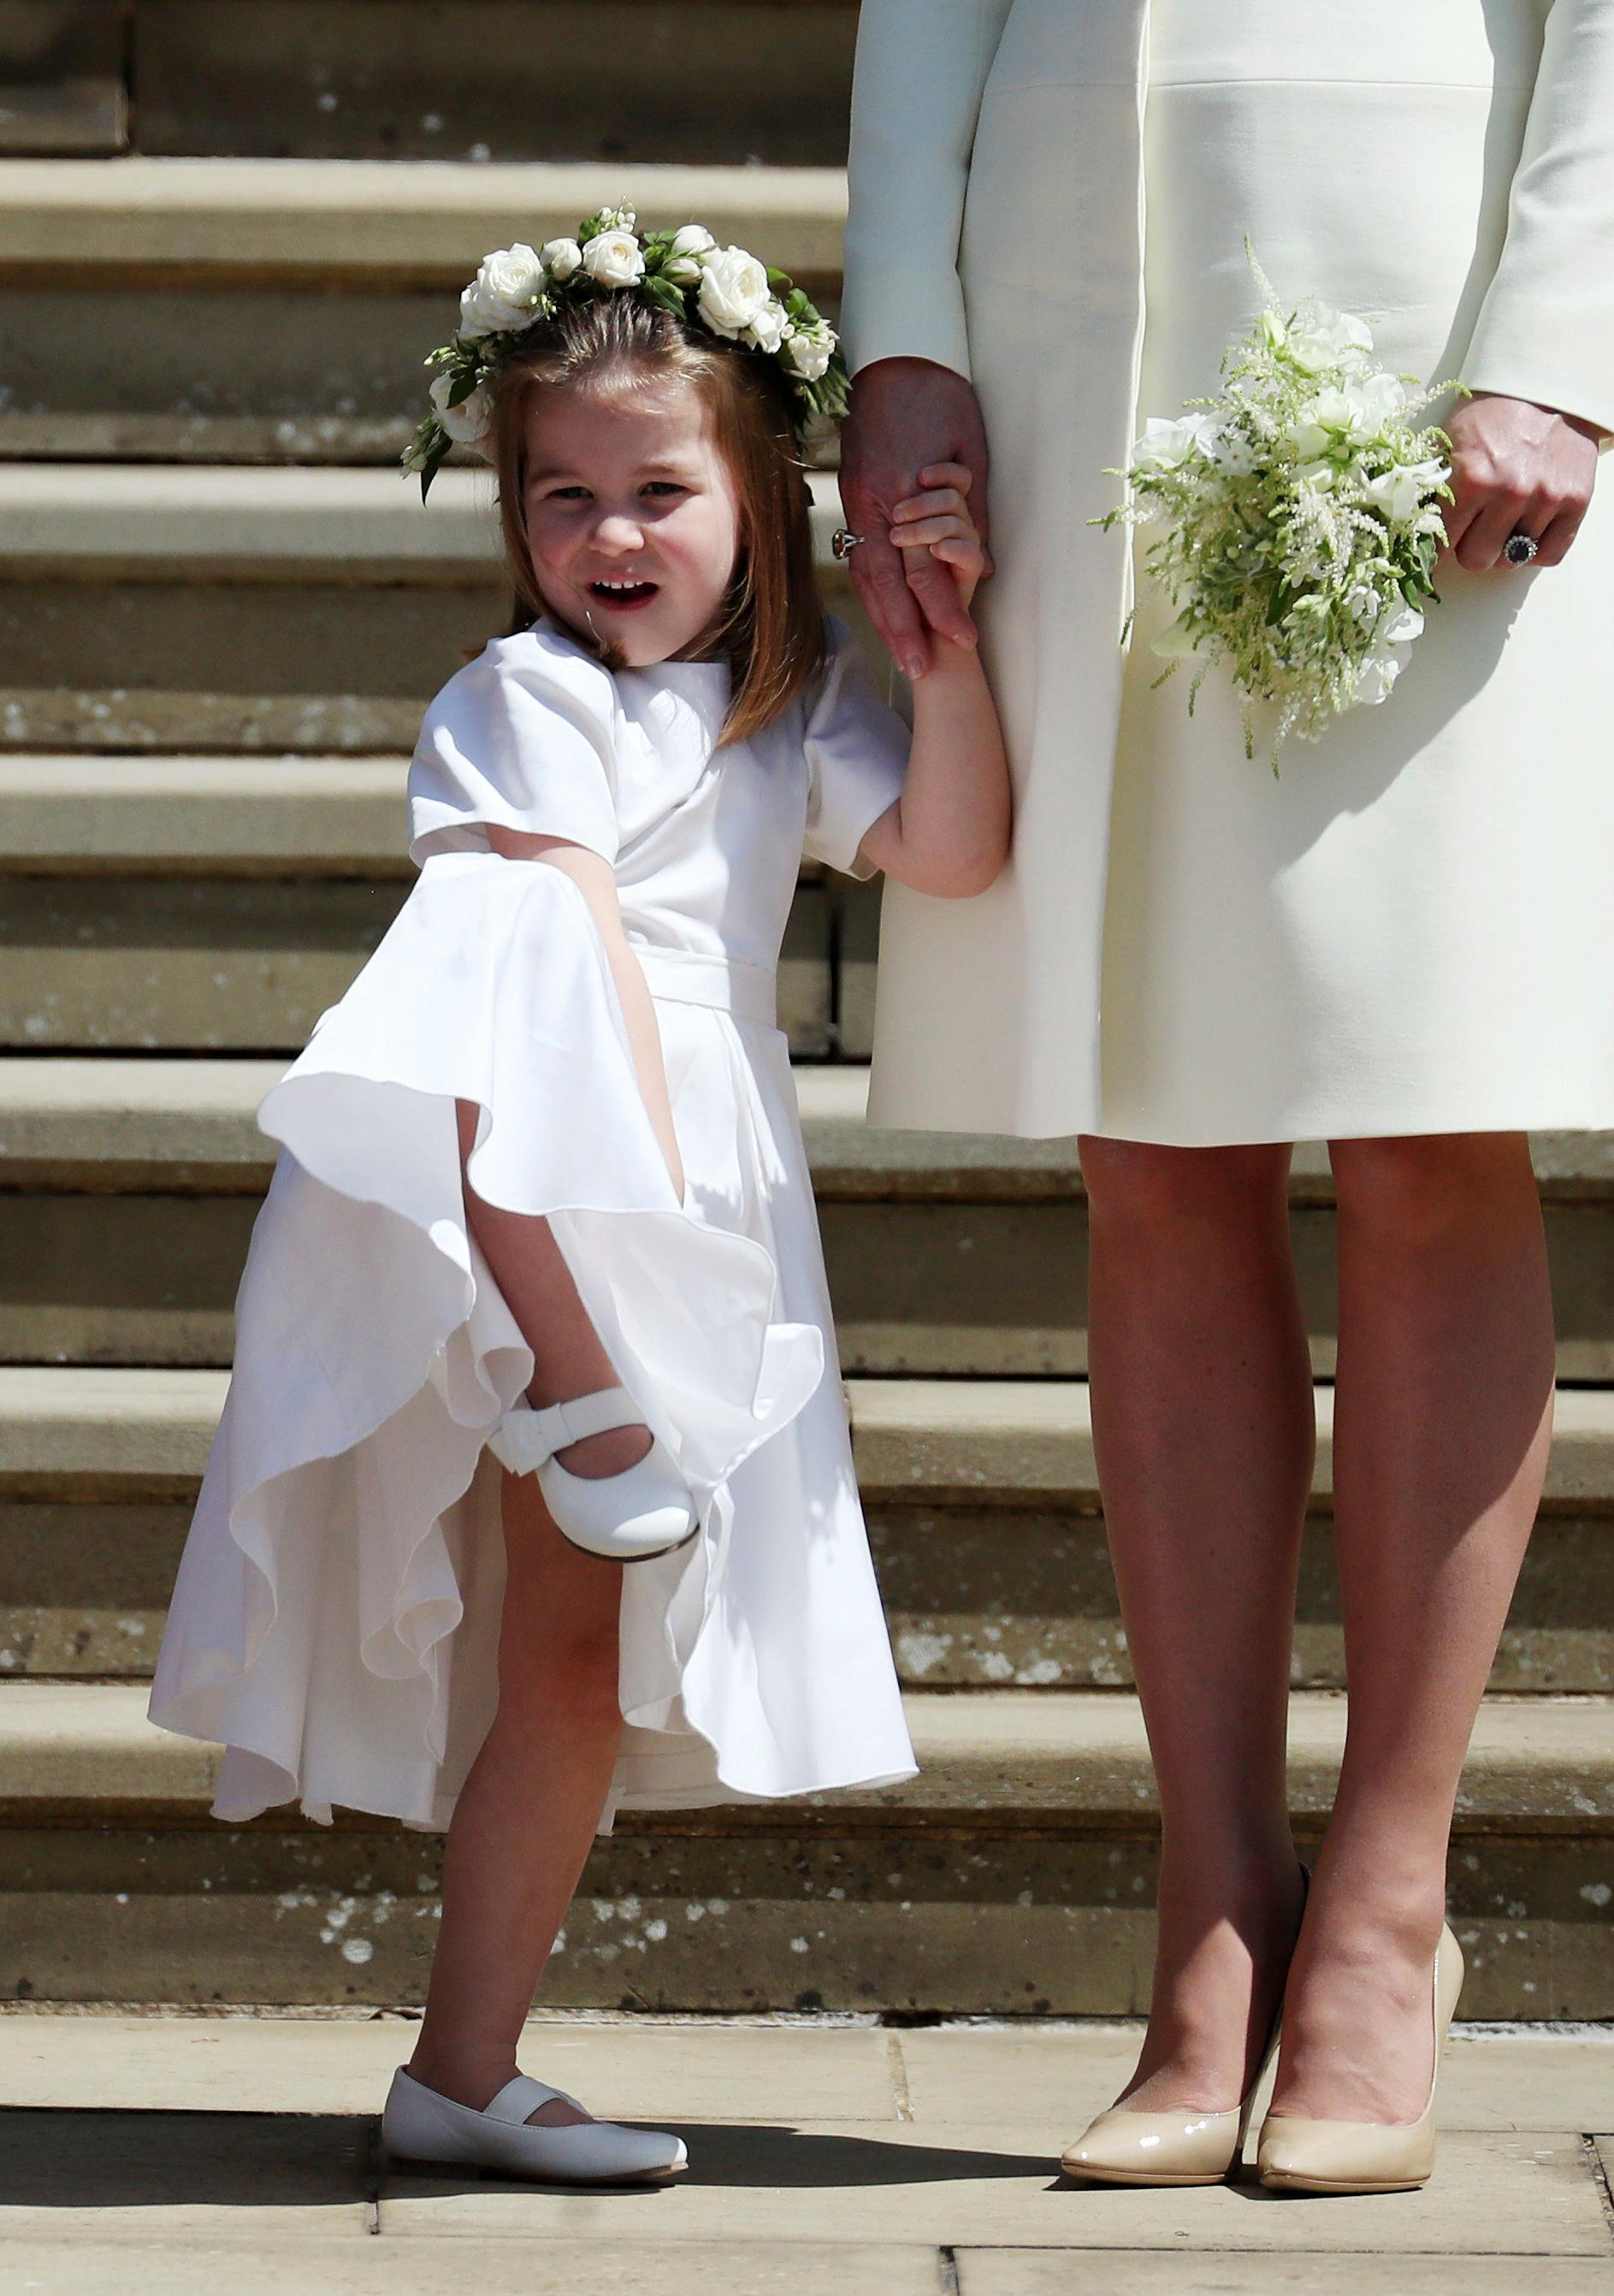 Princess Charlotte looks at Meghan Markle and Britain's Prince Harry on the steps of St George's Chapel at Windsor Castle following their wedding in Windsor, near London, England, Saturday, May 19, 2018. (Jane Barlow/pool photo via AP)